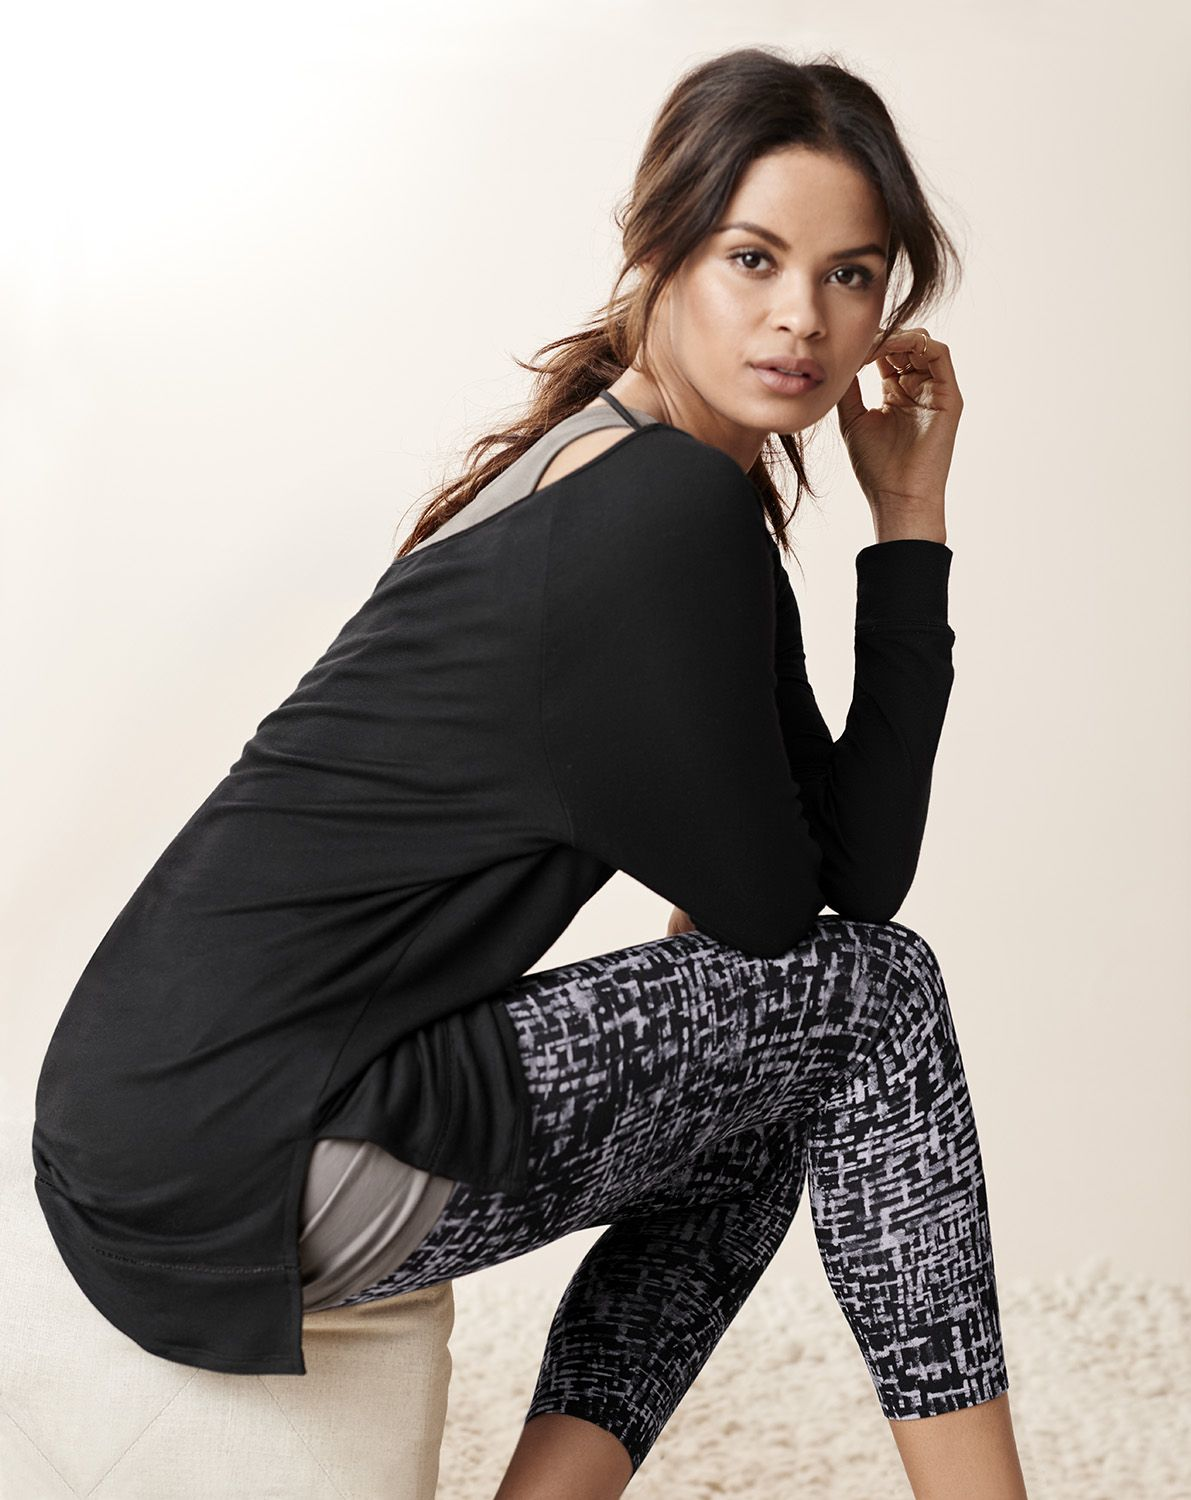 040b7845fcab1 Ballet-inspired. Comfort required. You ll love our new studio-to-street  athleisure. Soma